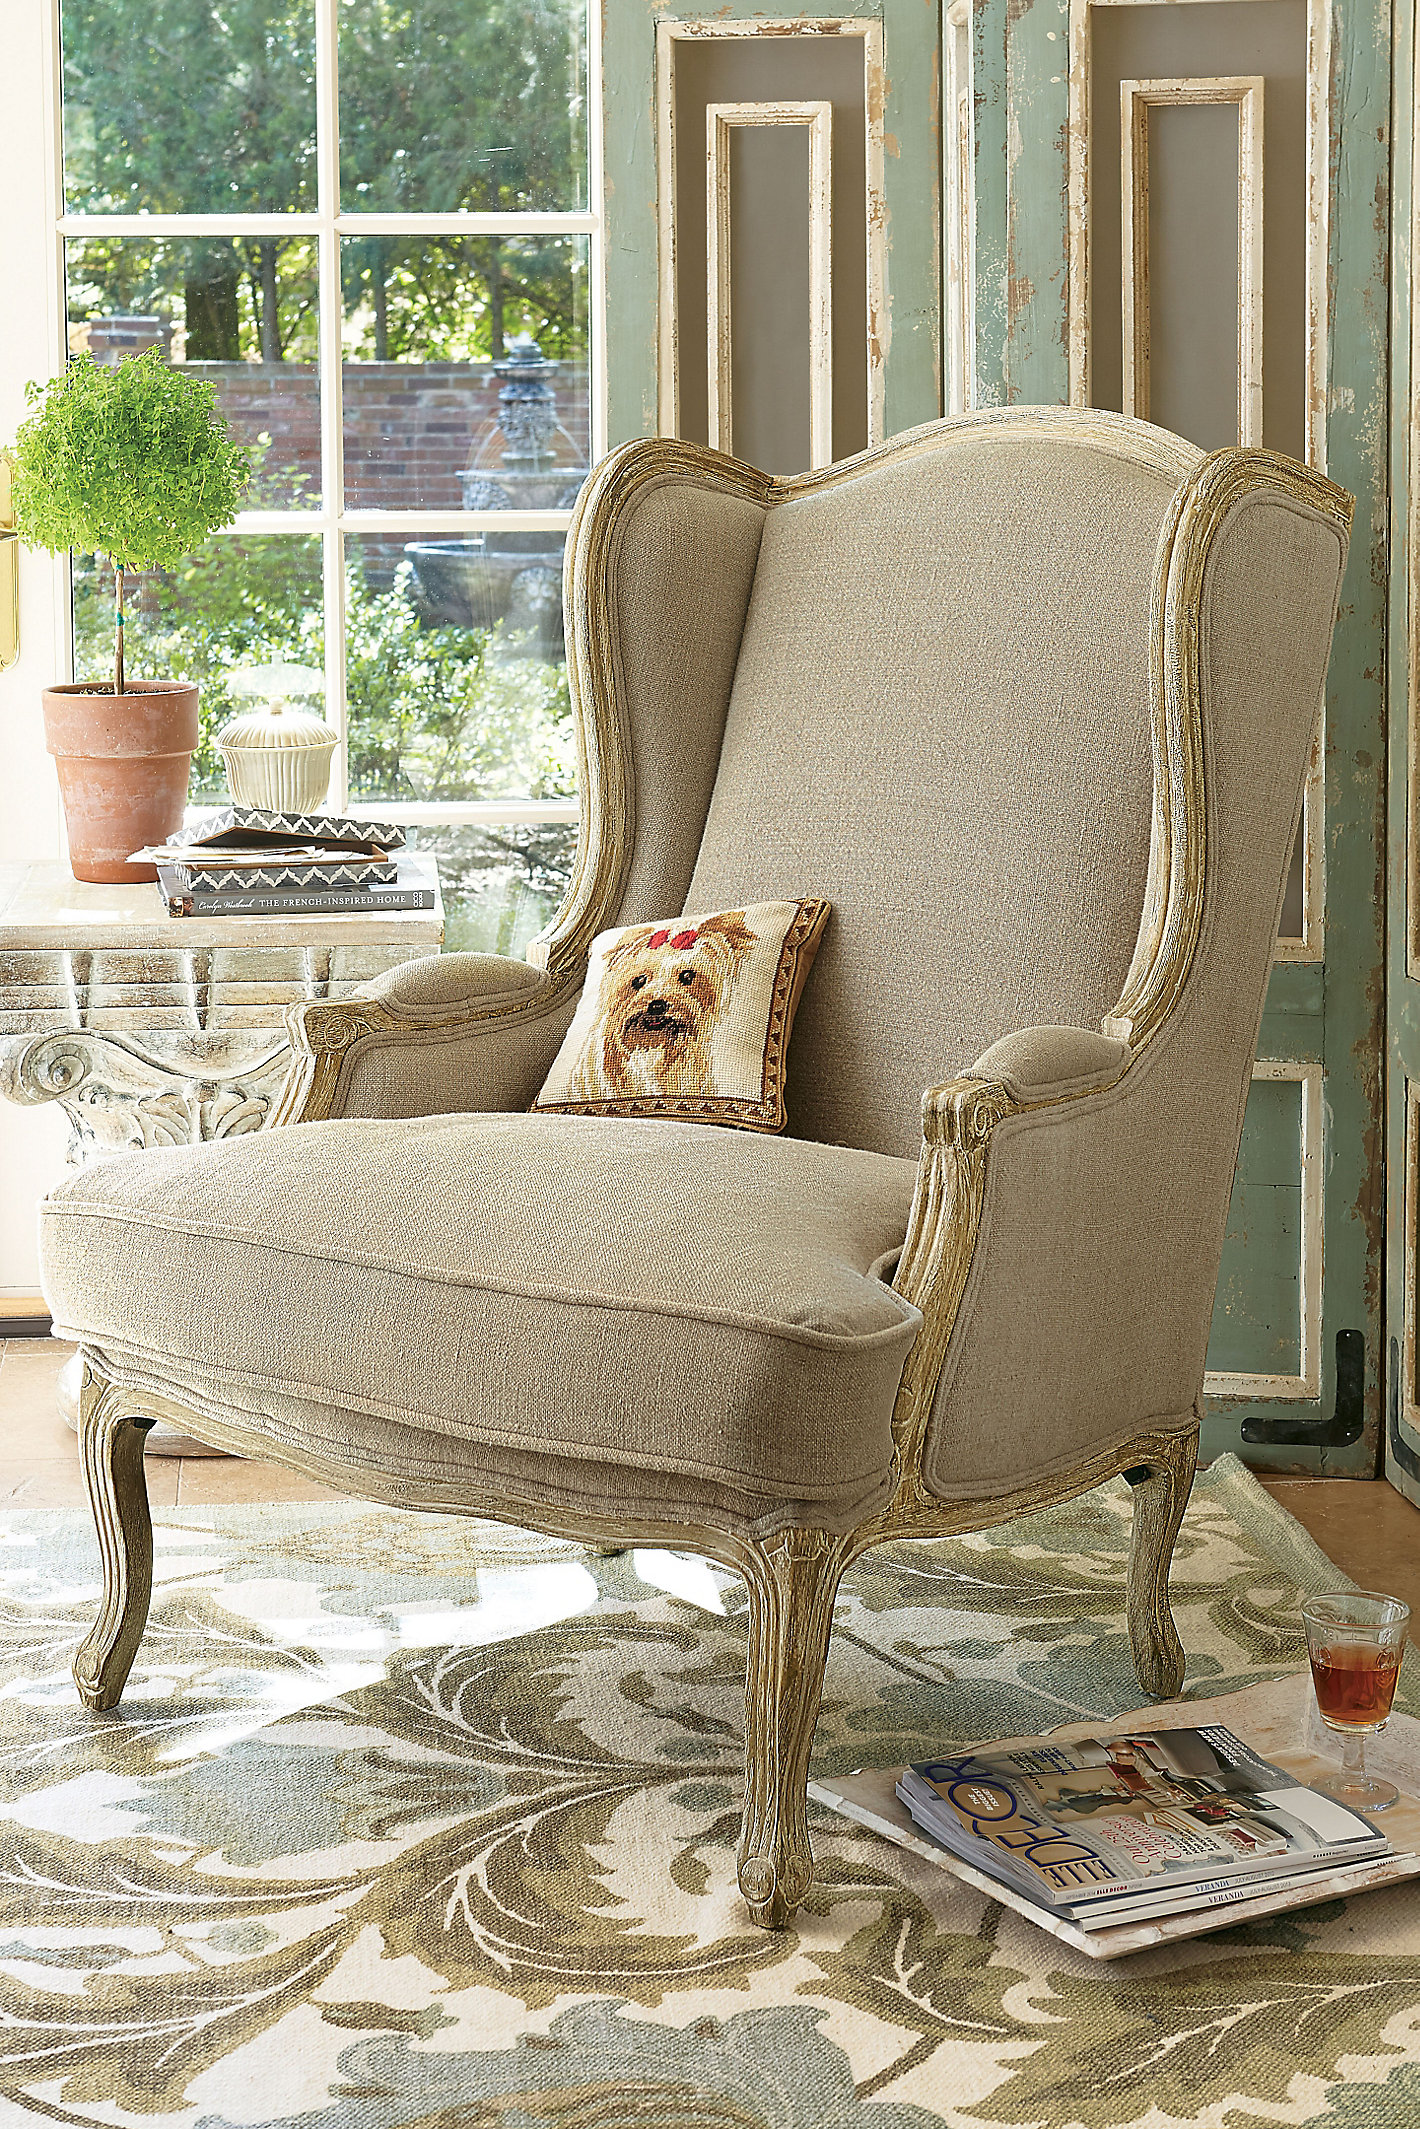 LIMOGES LADIES CHAIR